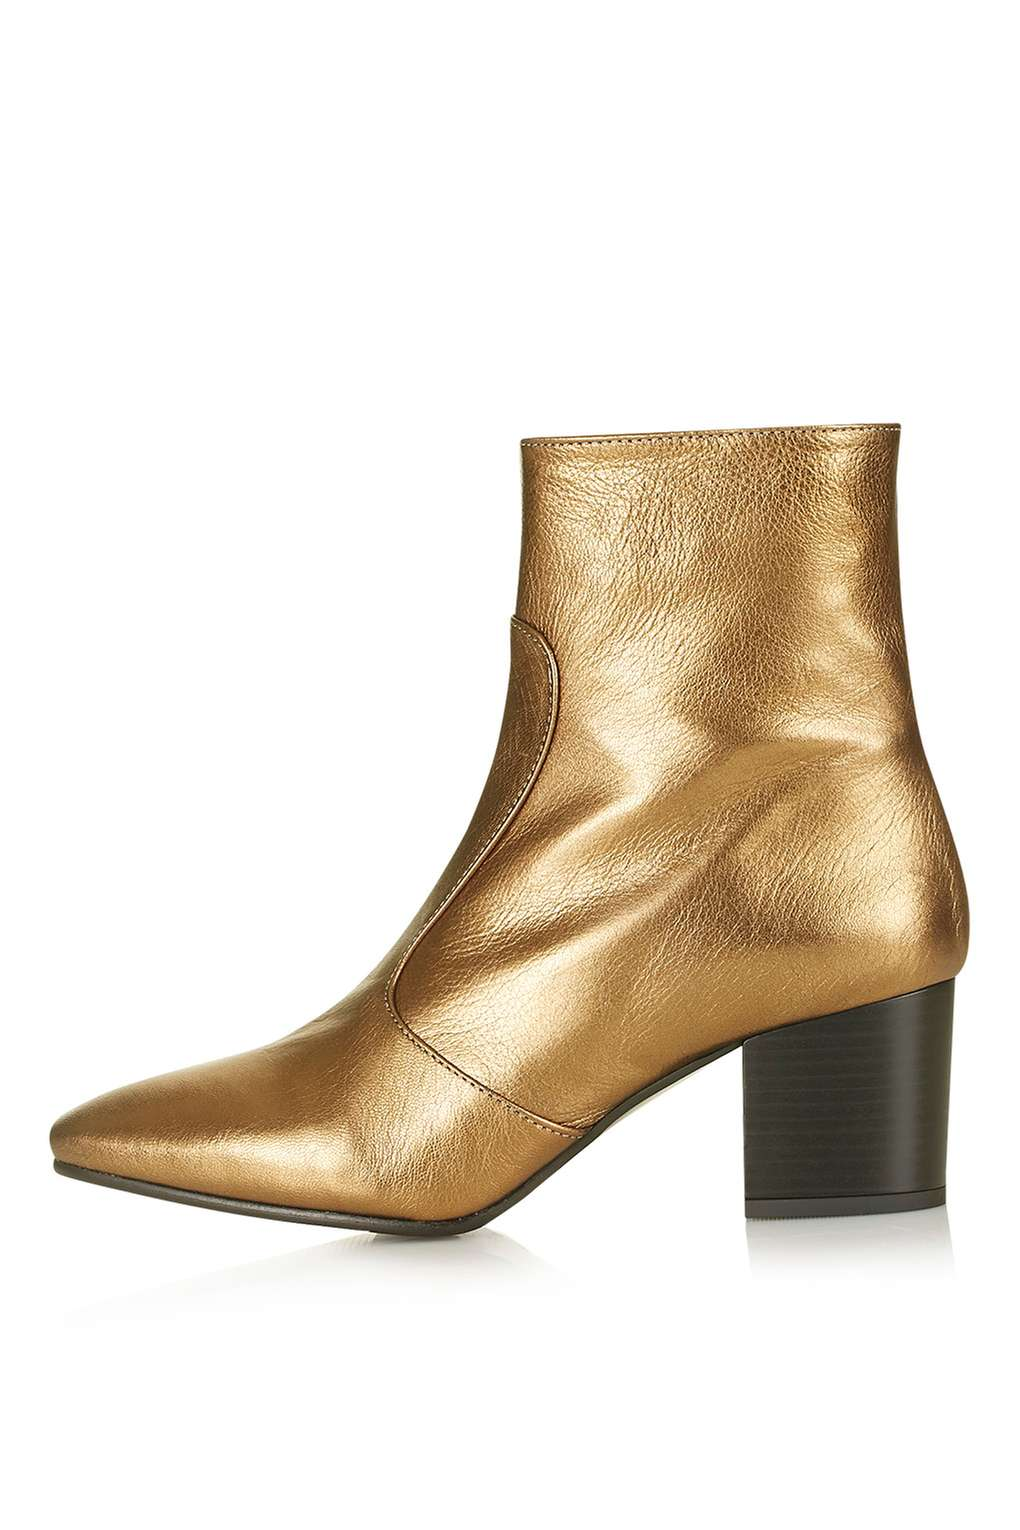 Gold metallic ankle boots £75  Top Shop